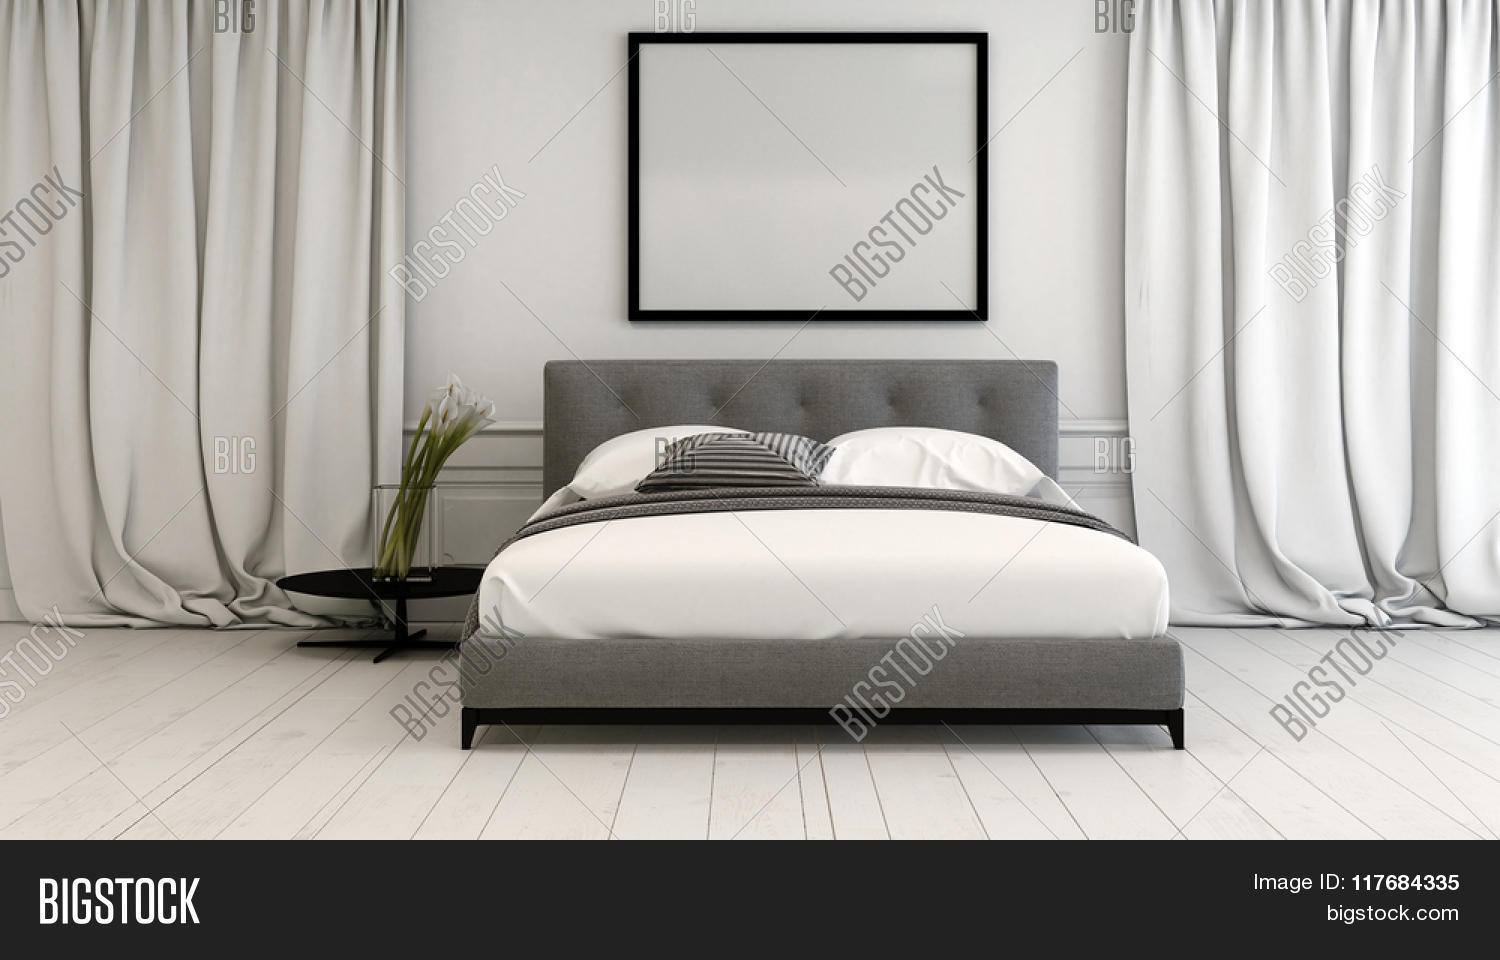 Length Of A Double Bed Modern Bedroom Interior In Neutral Tones With A Double